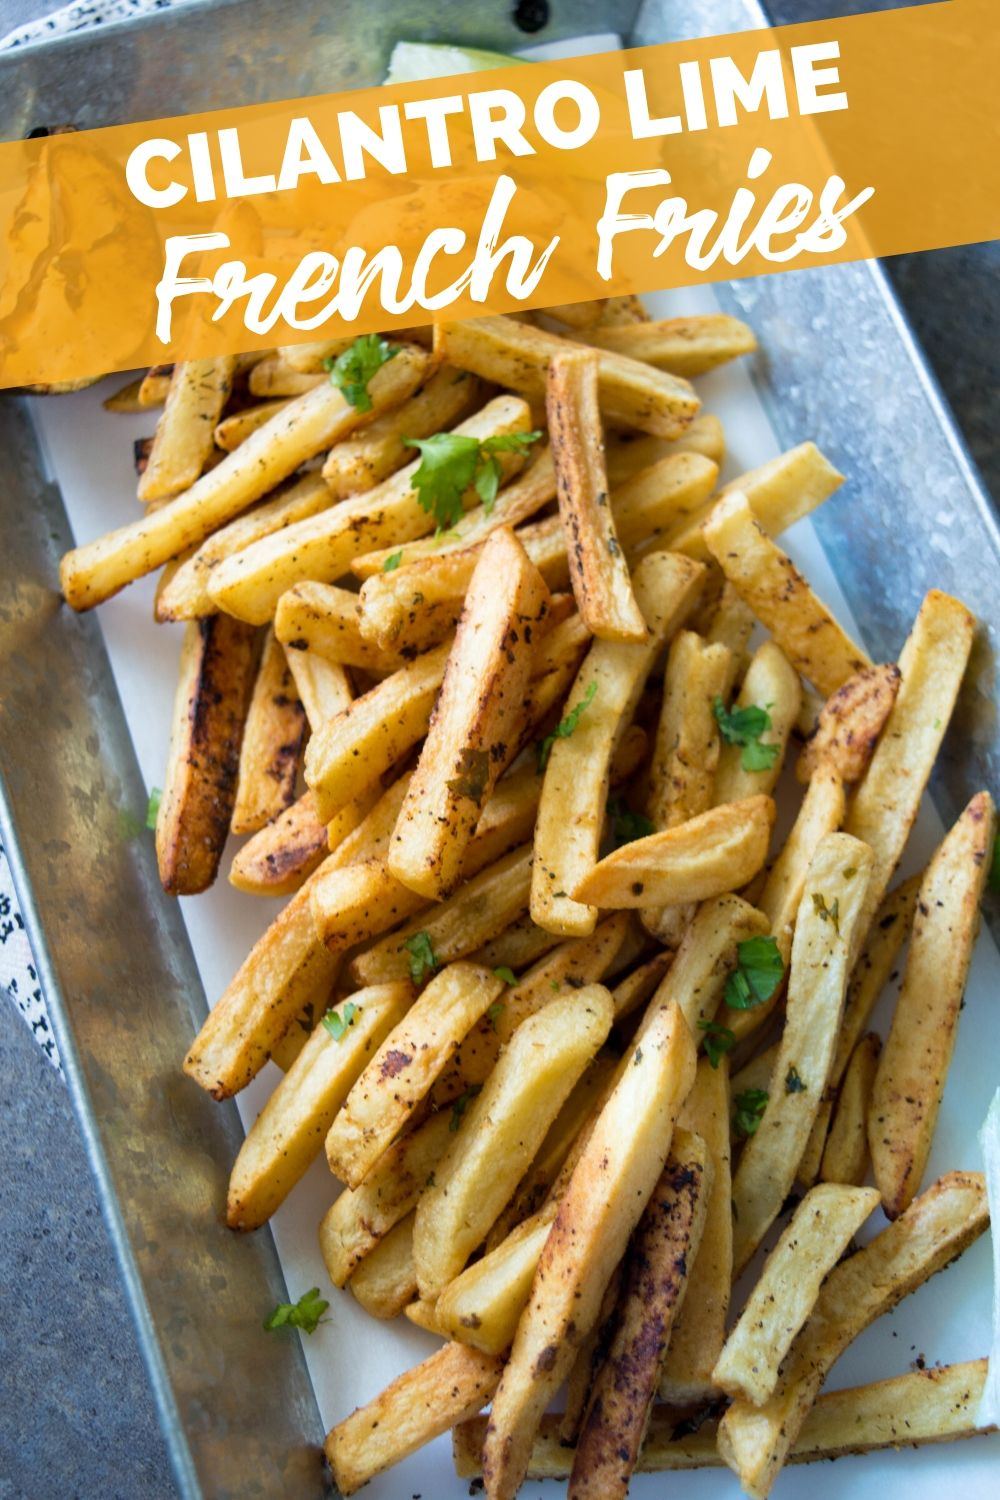 Cilantro Lime French Fries recipe from Family Fresh Meals